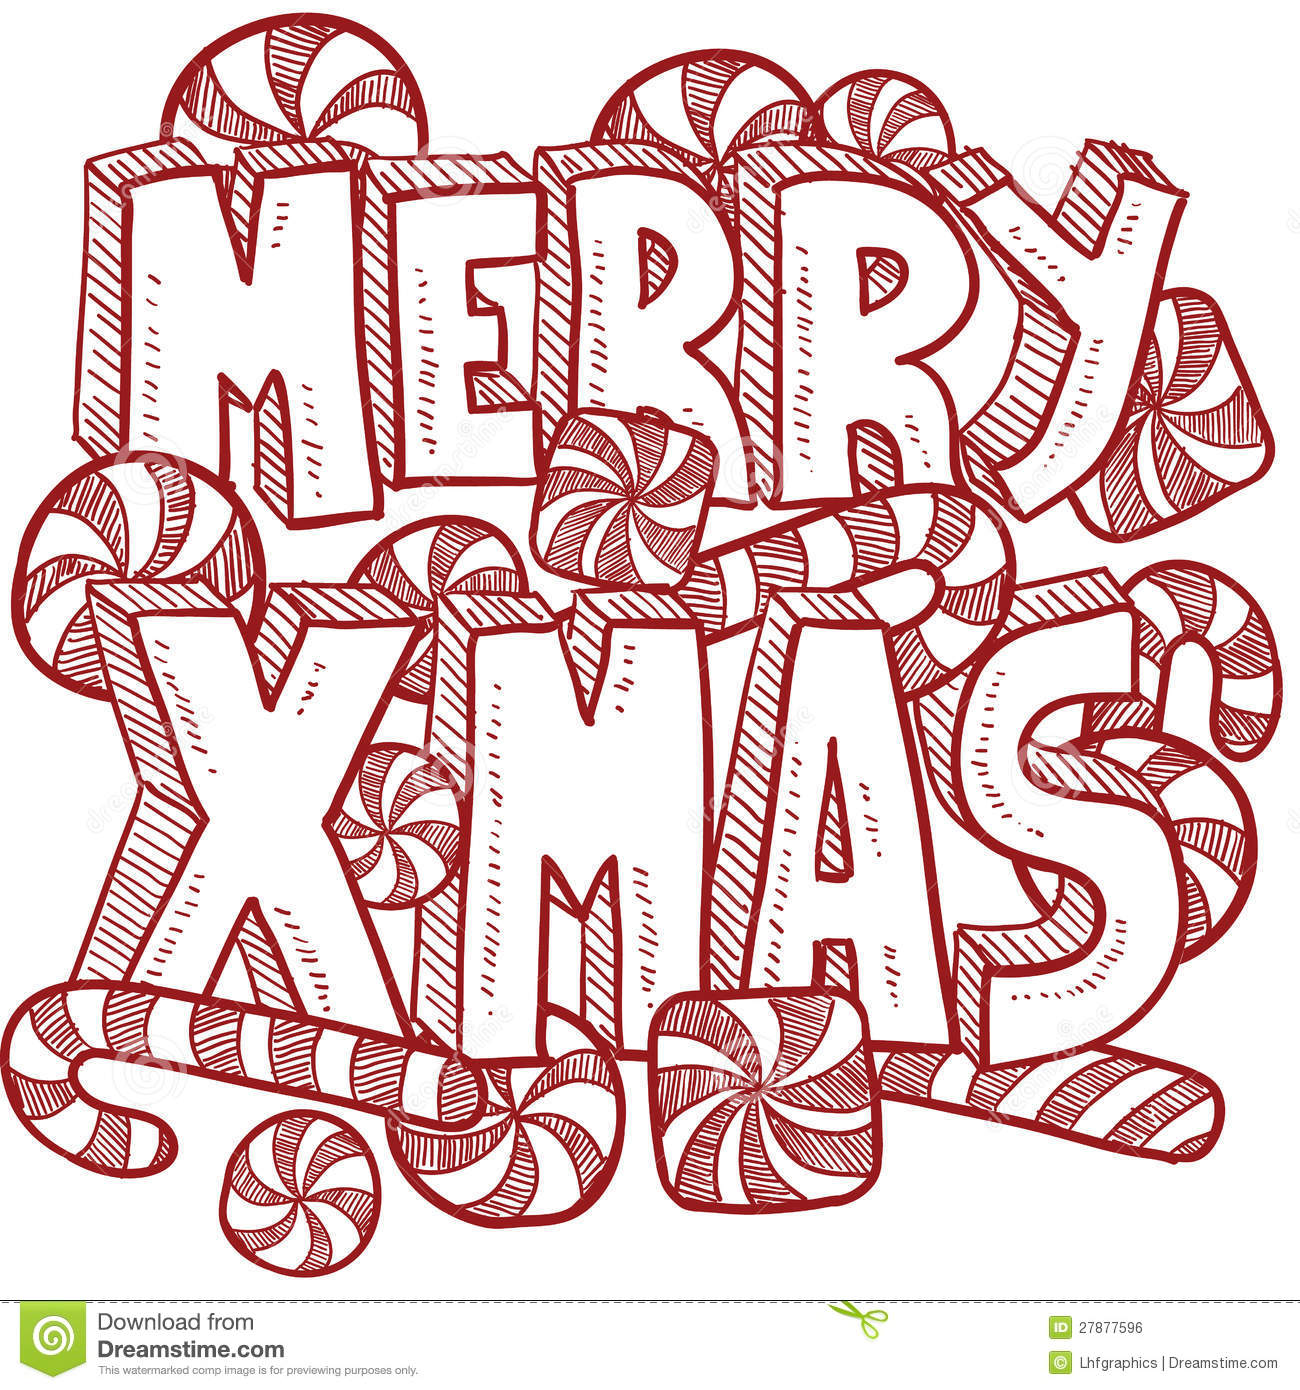 Merry Christmas Message Vector Stock Vector - Illustration of sketch ...